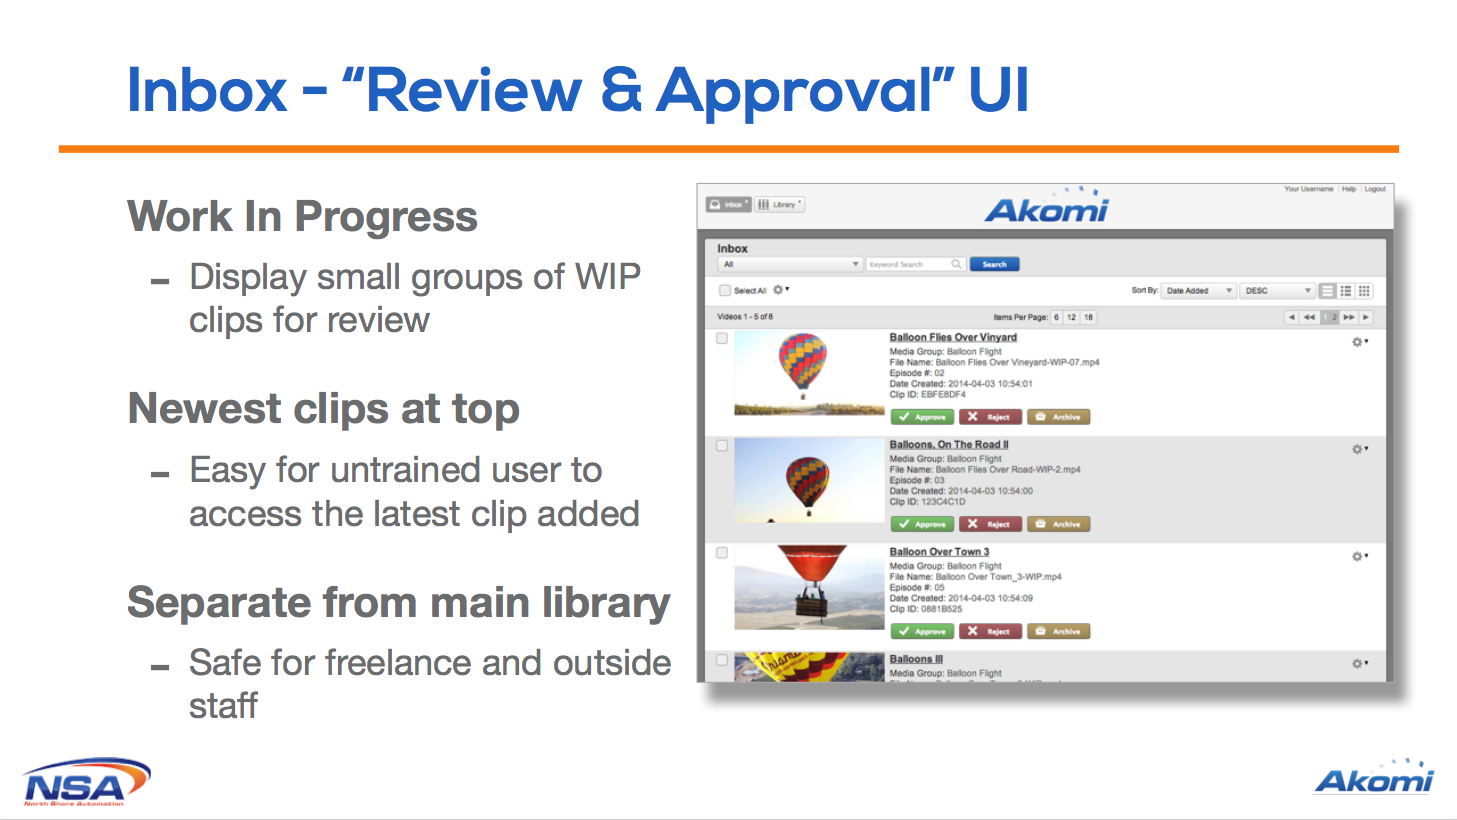 Review & Approve clips directly from the inbox